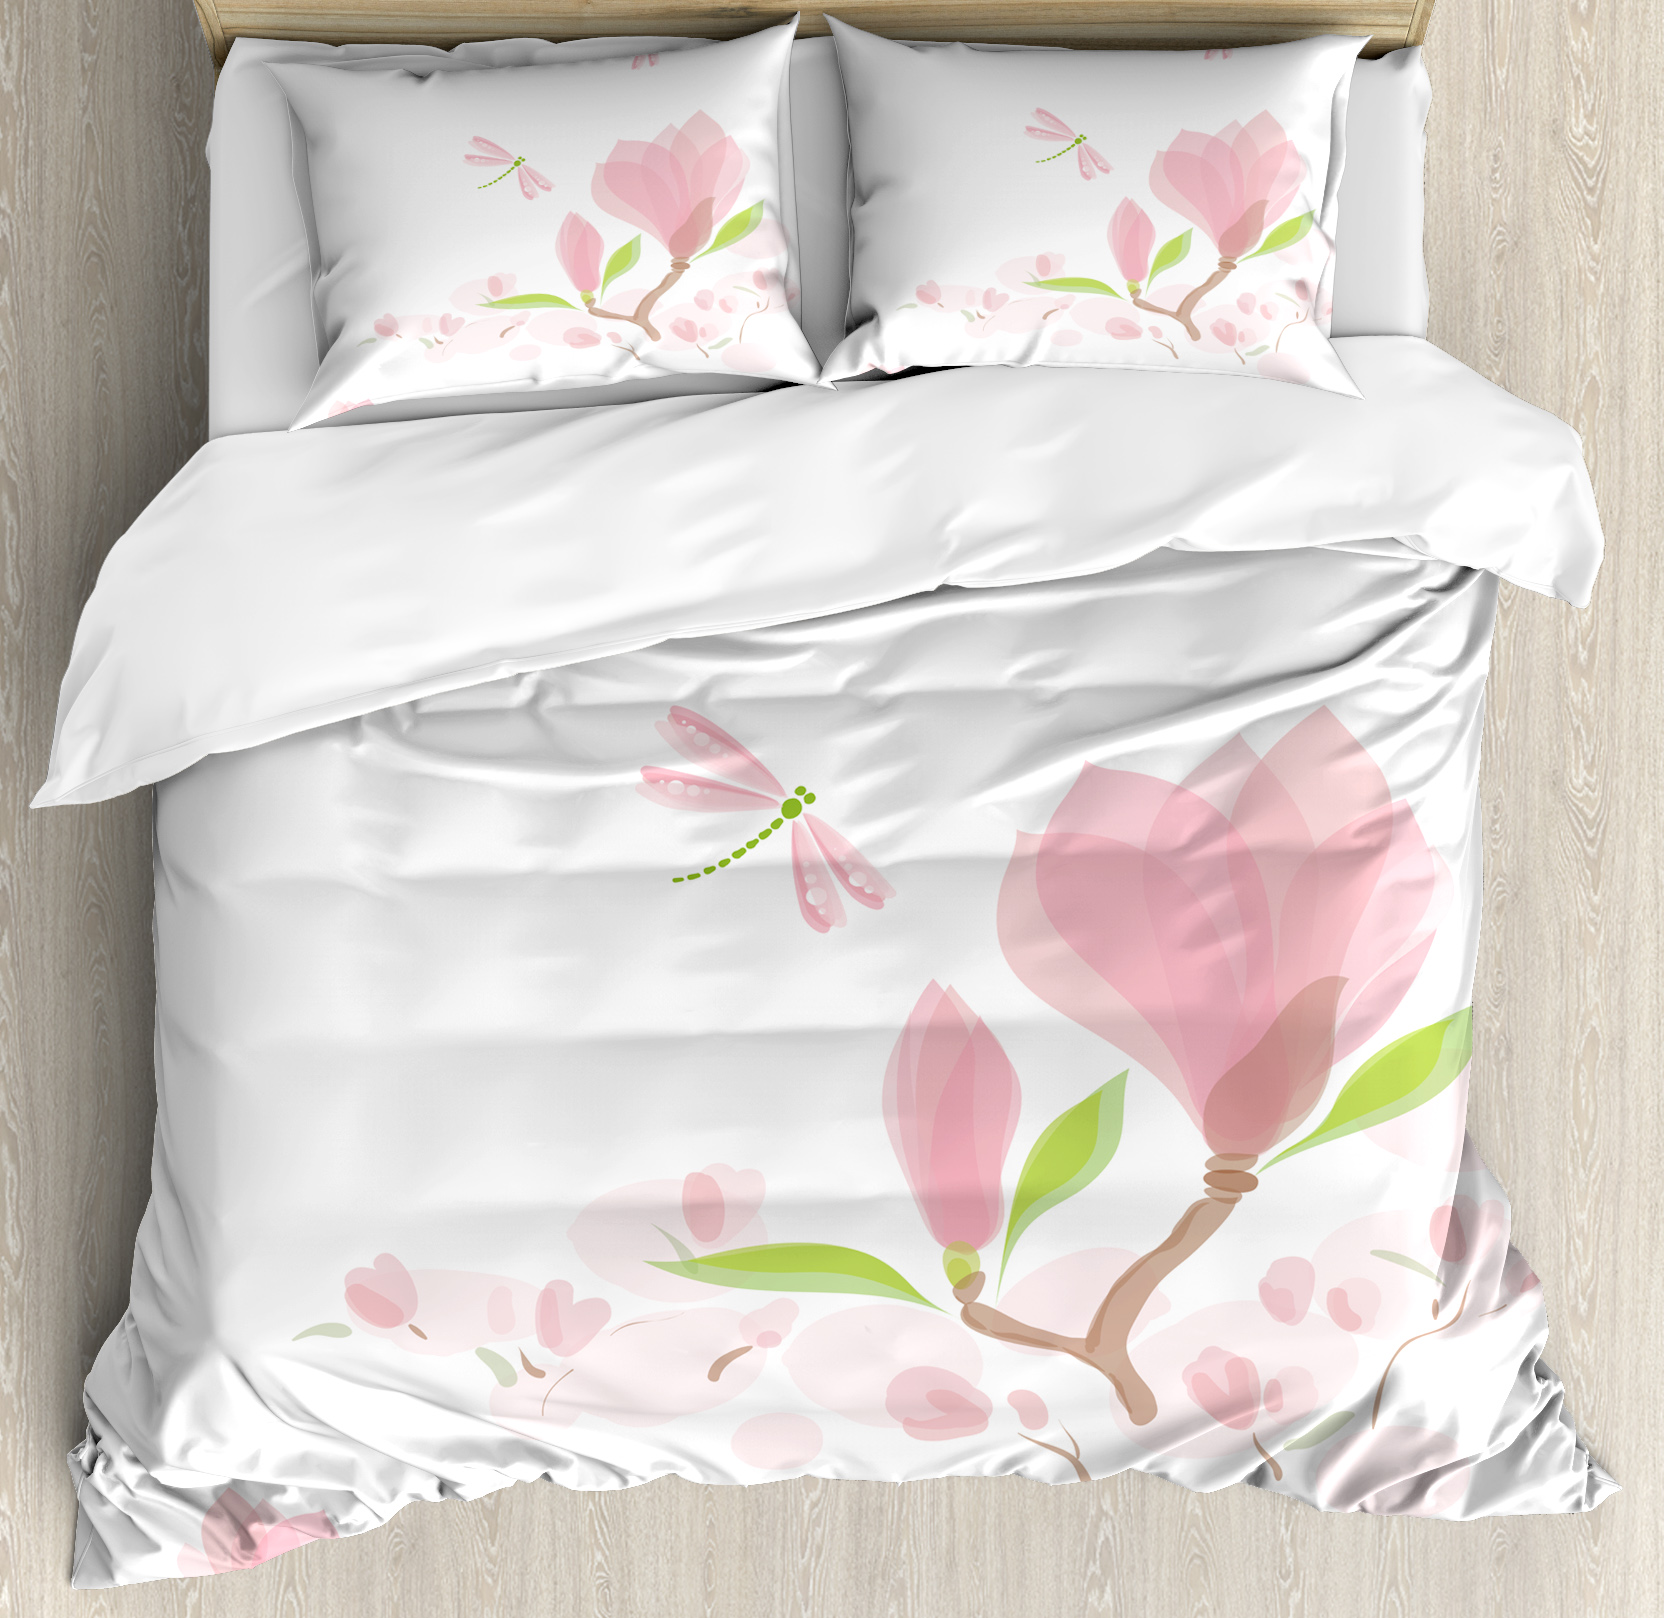 Dragonfly Queen Size Duvet Cover Set, Magnolia Branches a...